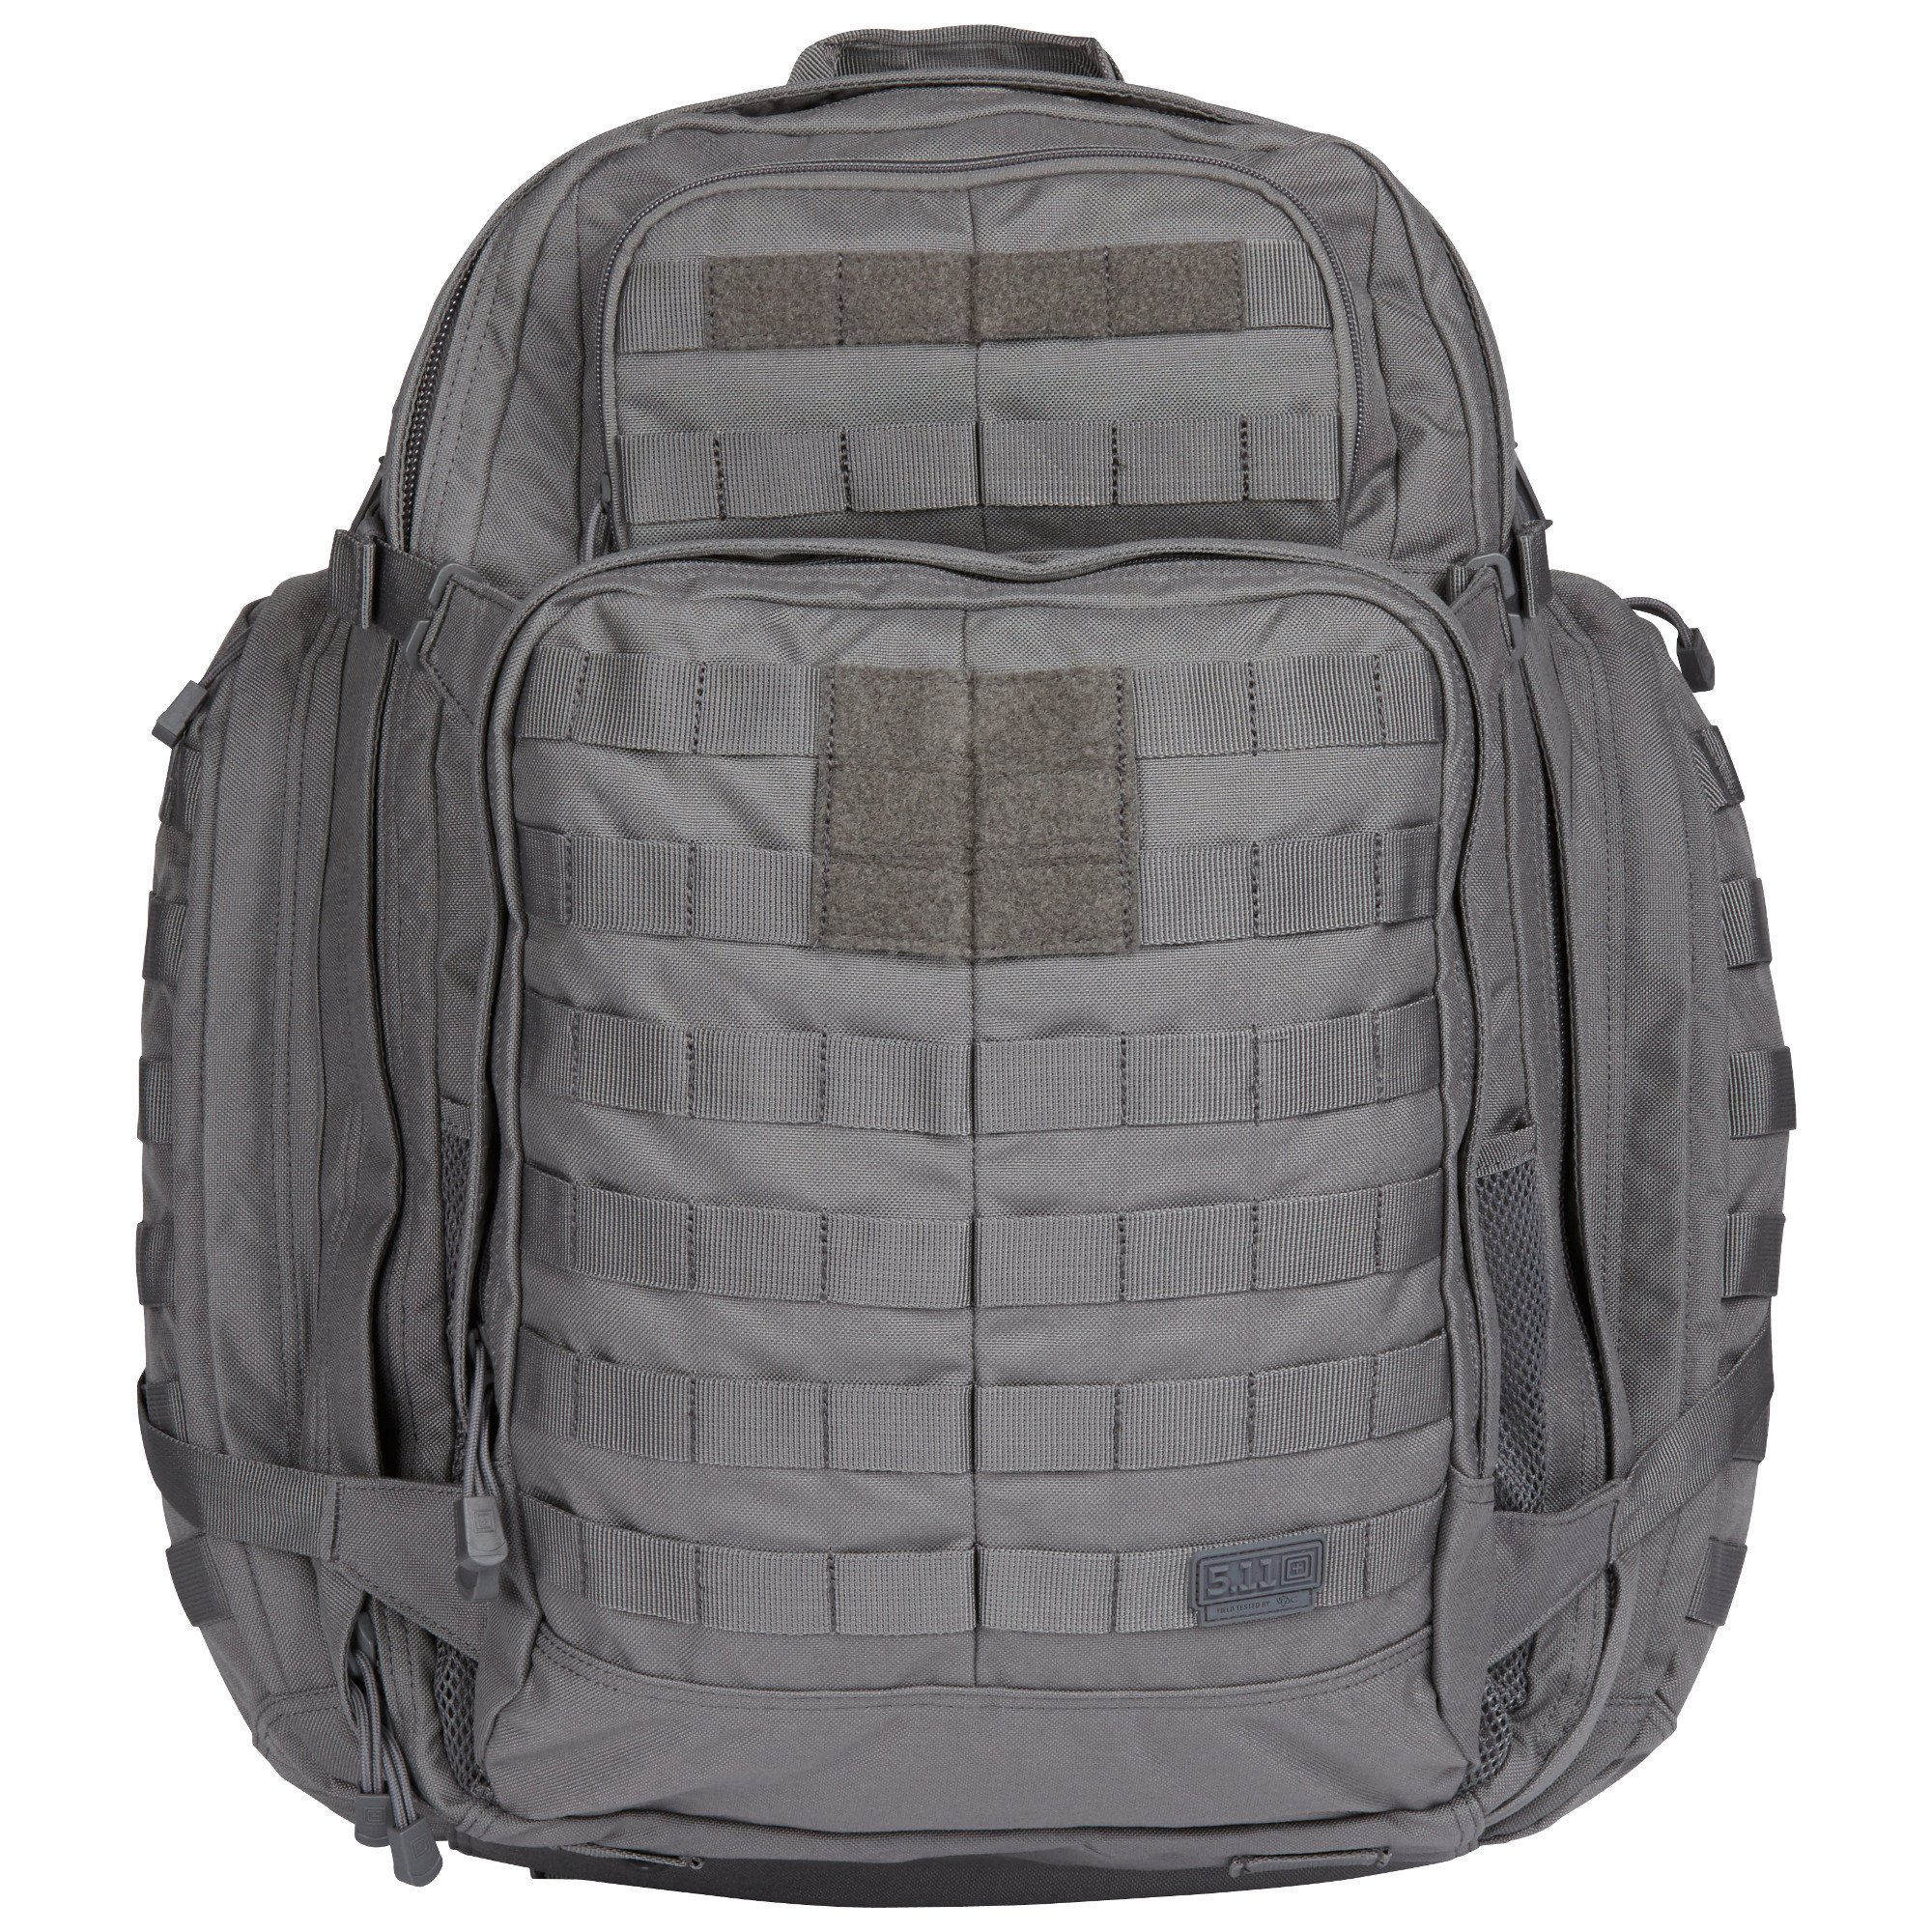 5.11Tactical  RUSH72 Military Backpack, Molle Bag Rucksack Pack, 55 Liter Large, Style 58602 by 5.11